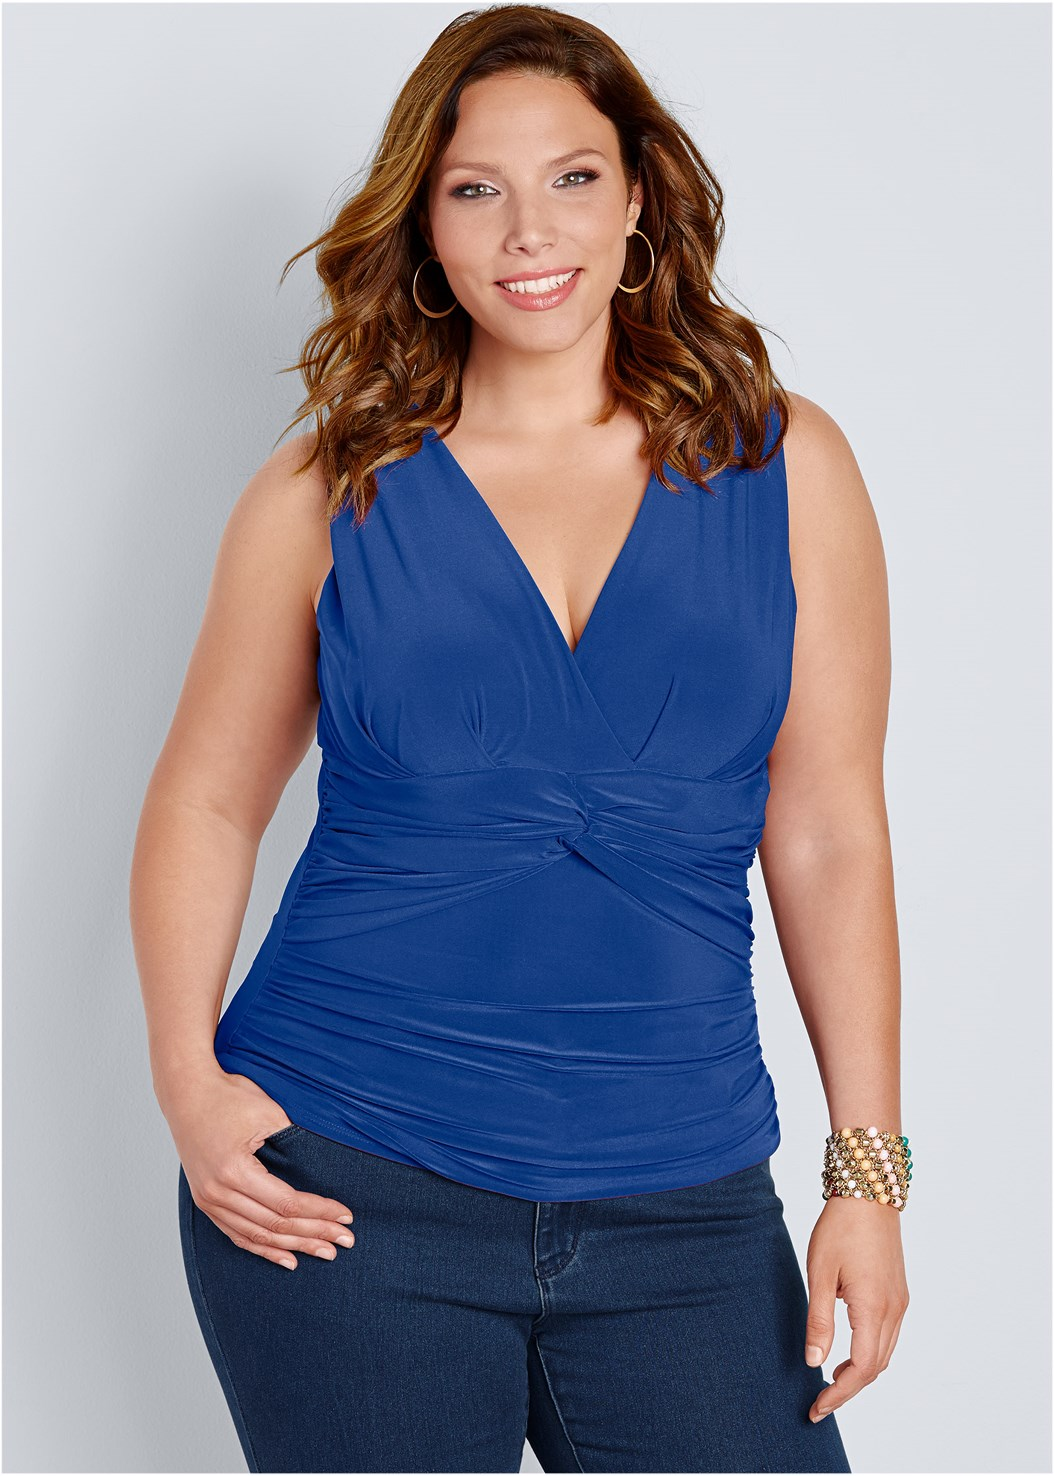 Knot Front Sleeveless Top,Bum Lifter Jeans,High Heel Strappy Sandals